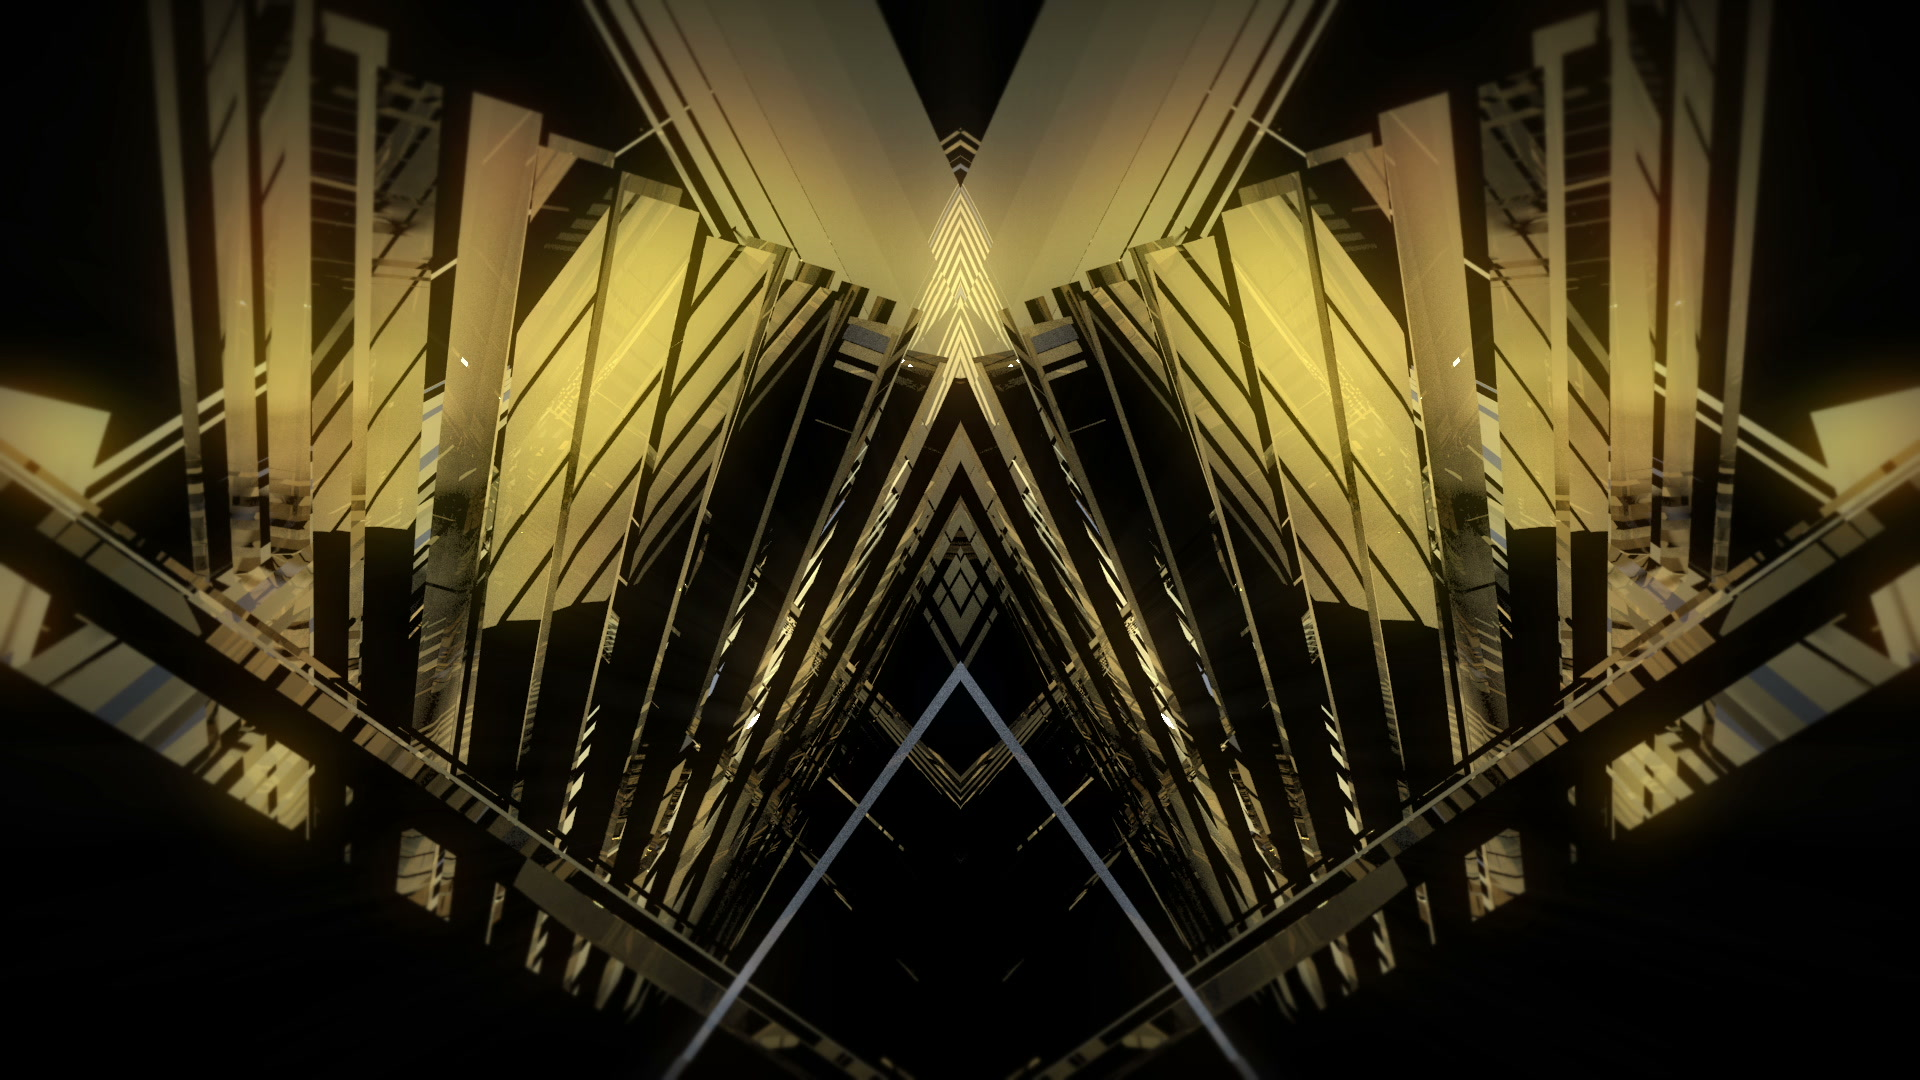 Gold-Pyrite-LIMEART-VJ-Loop_001 VJ Loops Farm - Video Loops & VJ Clips